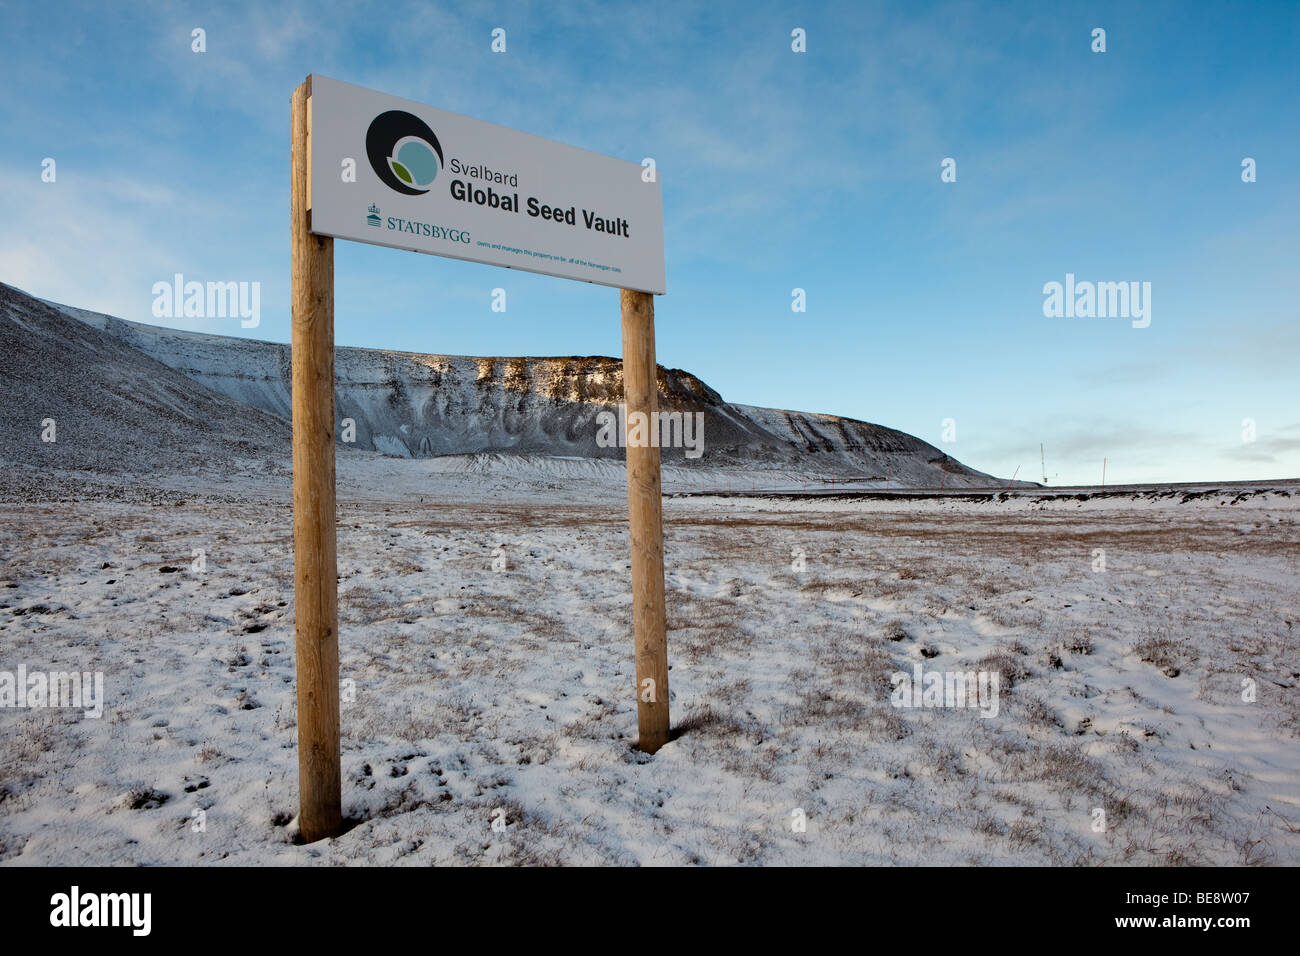 Svalbard Global Seed Vault Or The Doomsday Vault A Repository For